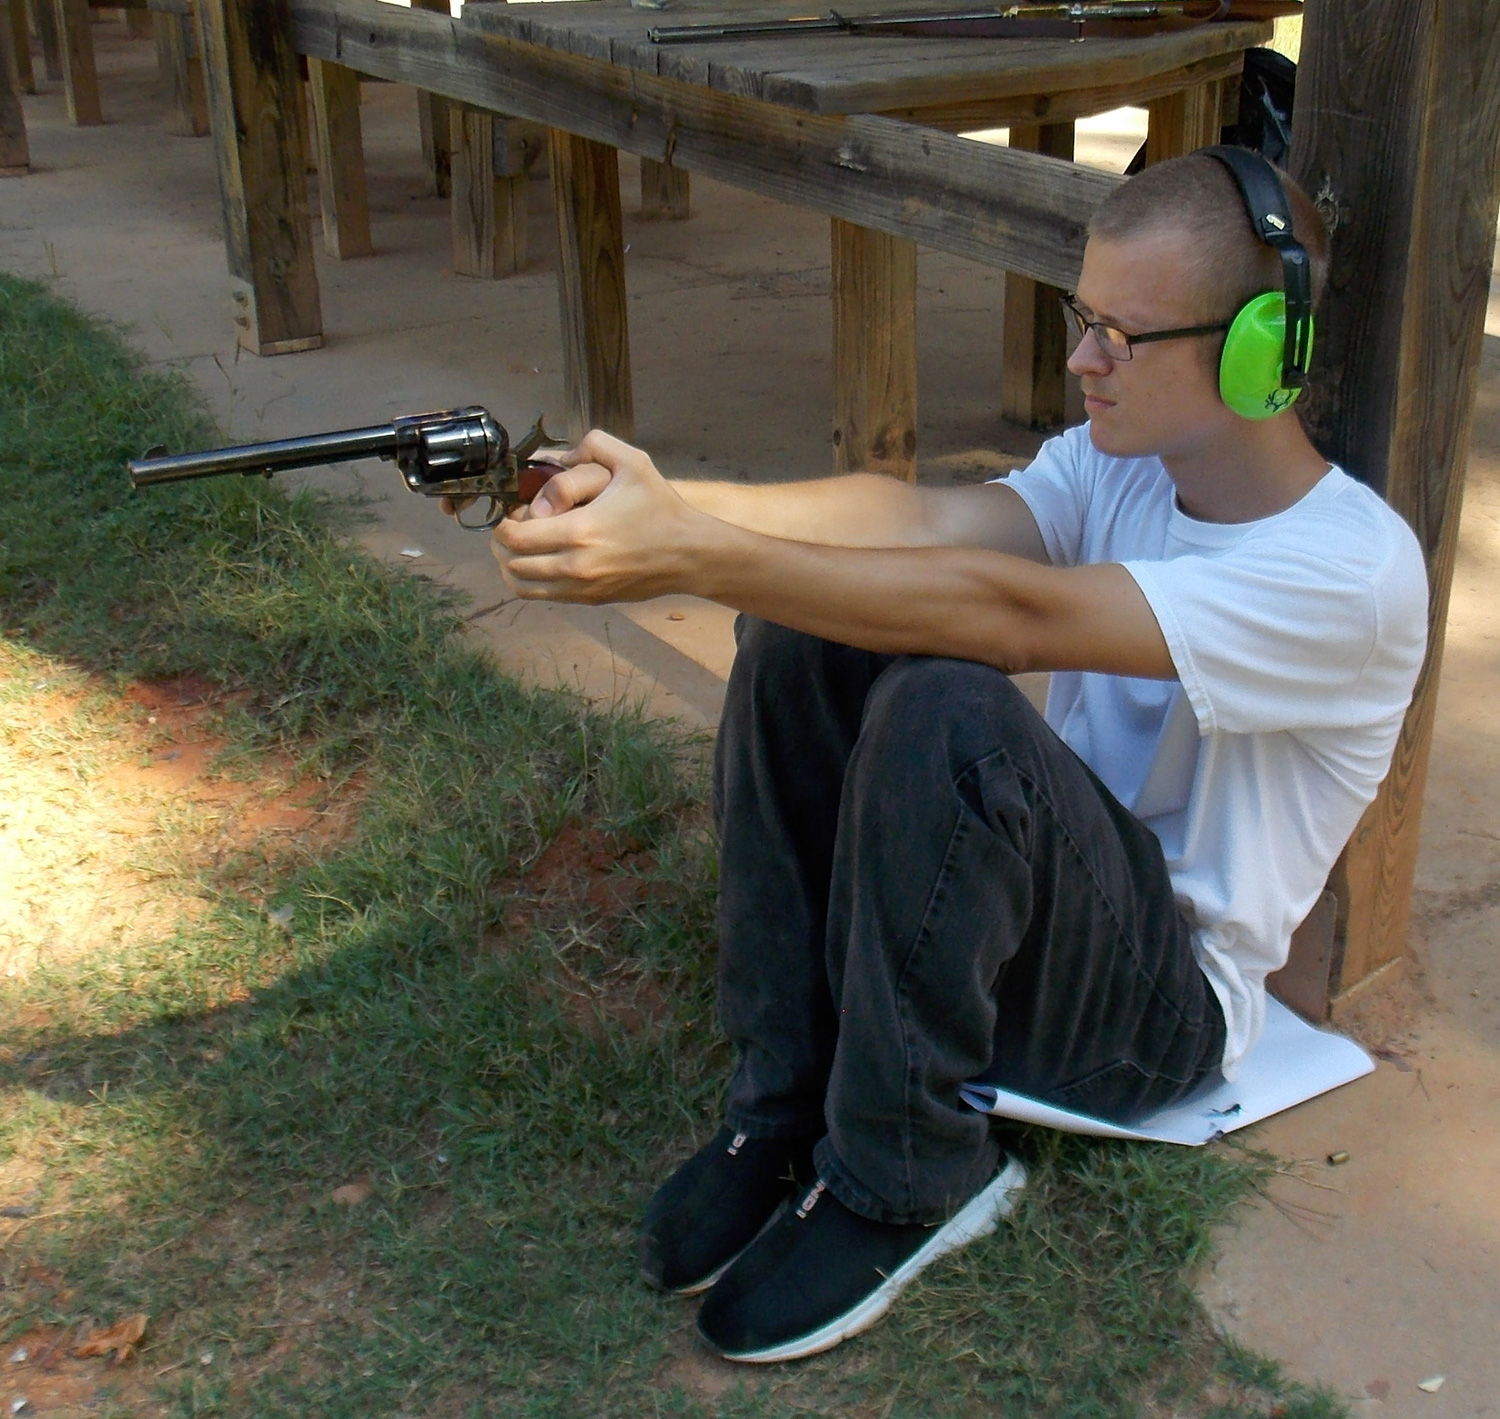 Man in sitting position firing a single action pistol with elbows resting on his knees